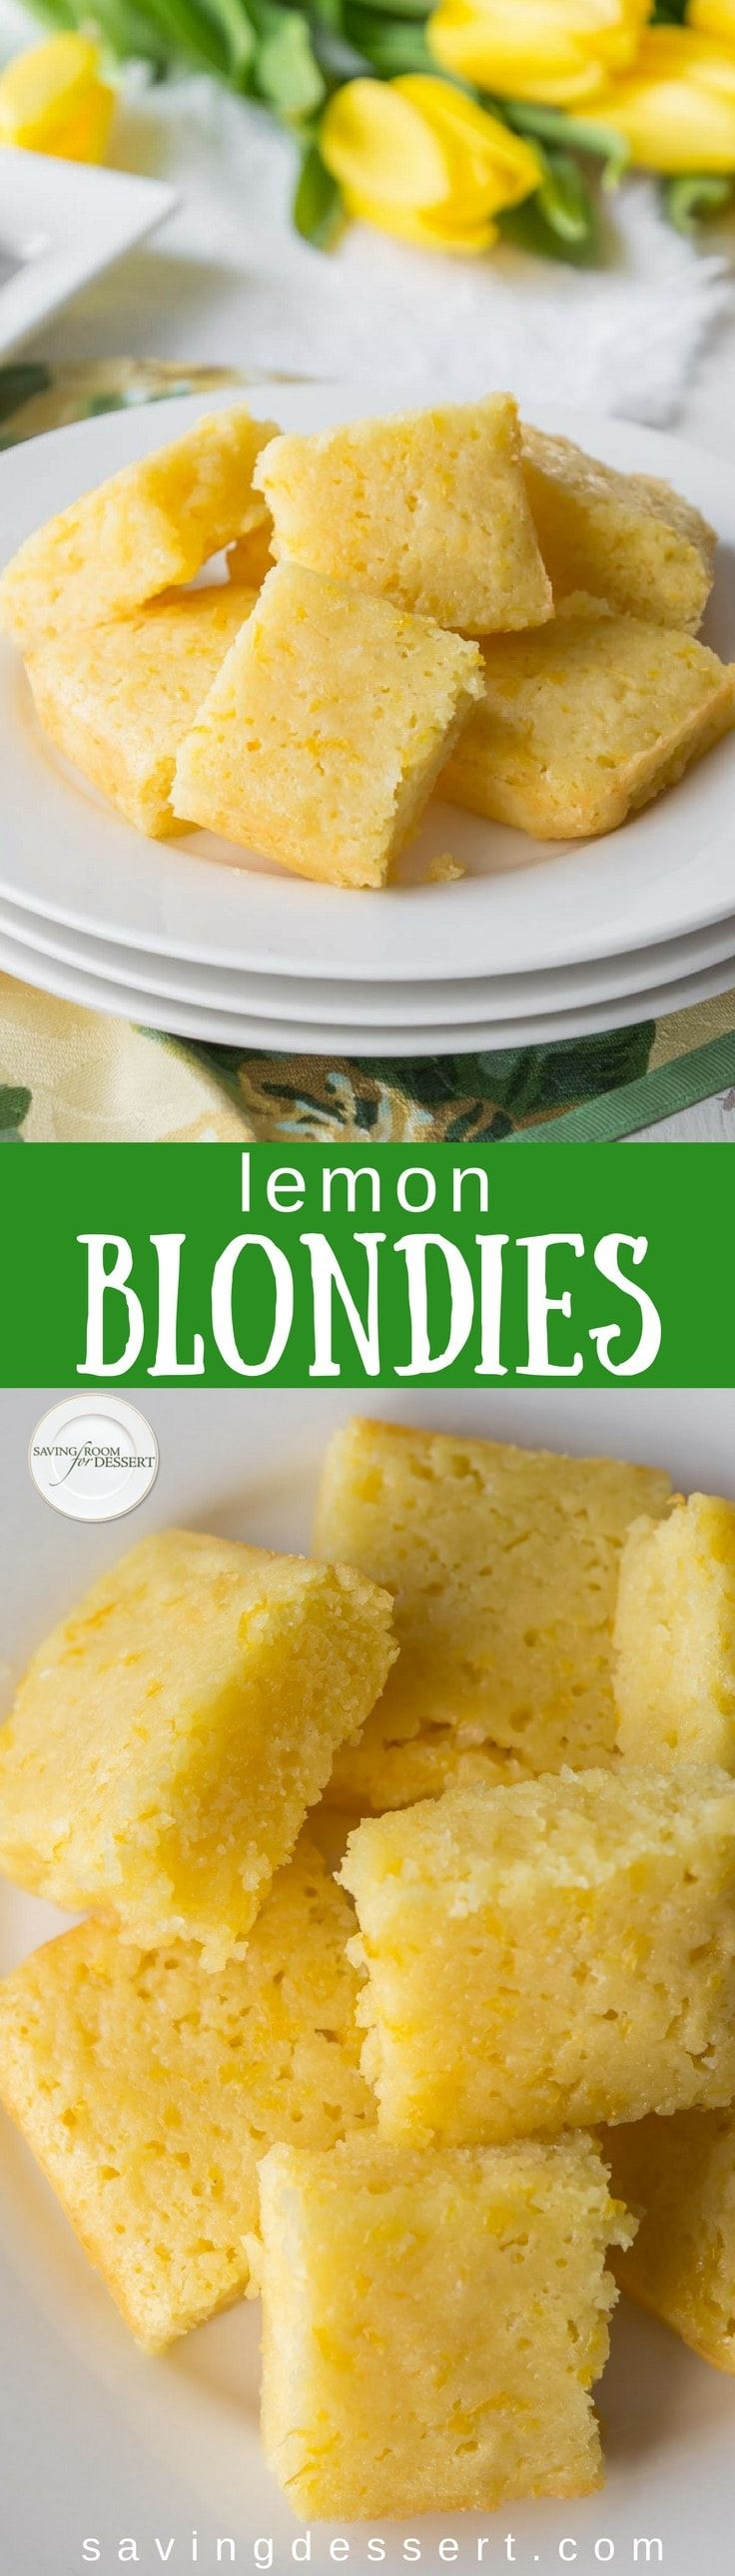 Tangy Lemon Blondies - a cross between a light and moist cake, and a sweet, tangy lemon bar. Super easy to make and even easier to eat! #savingroomfordessert #lemon #blondies #lemonblondies #lemoncake #dessert